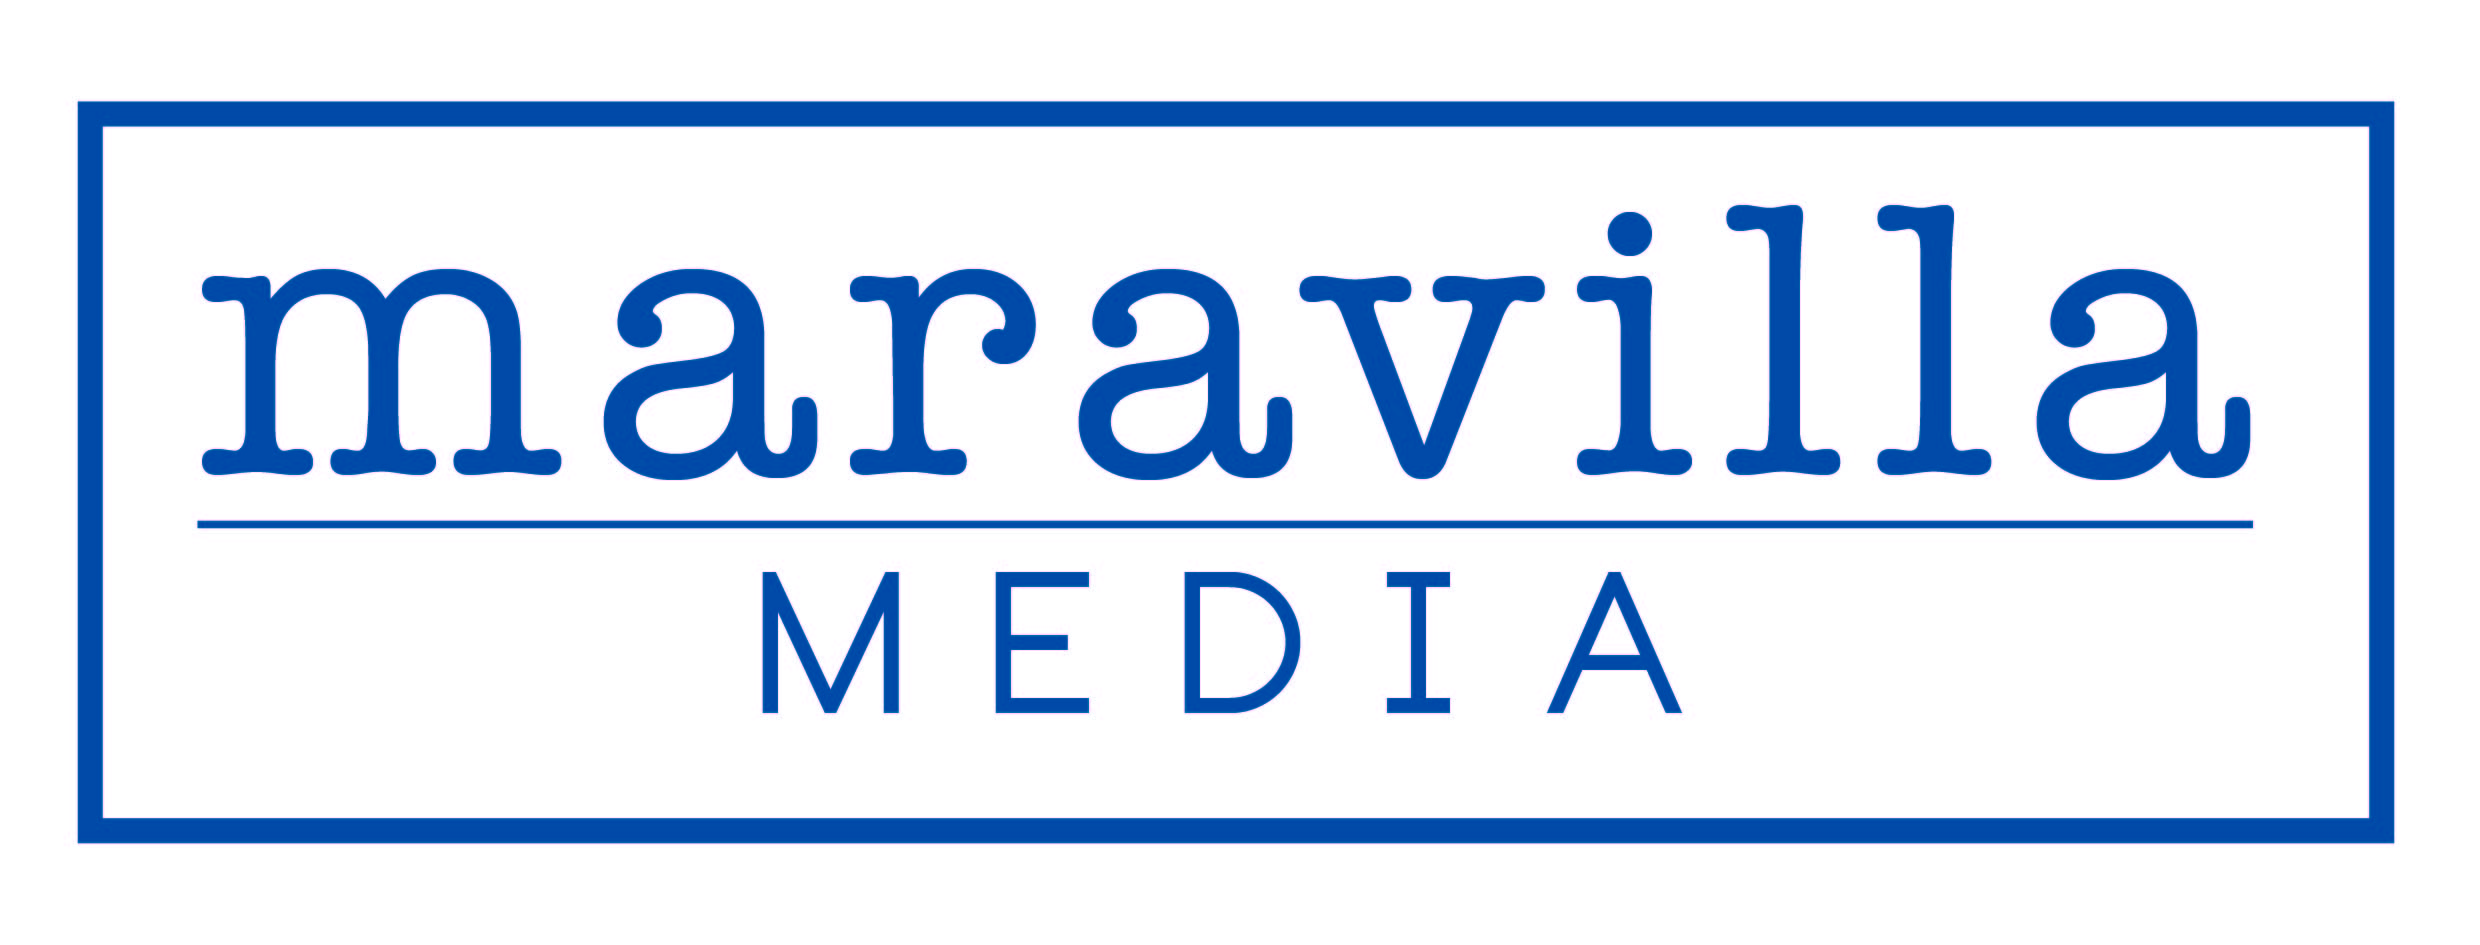 Media - Maravilla Media Group